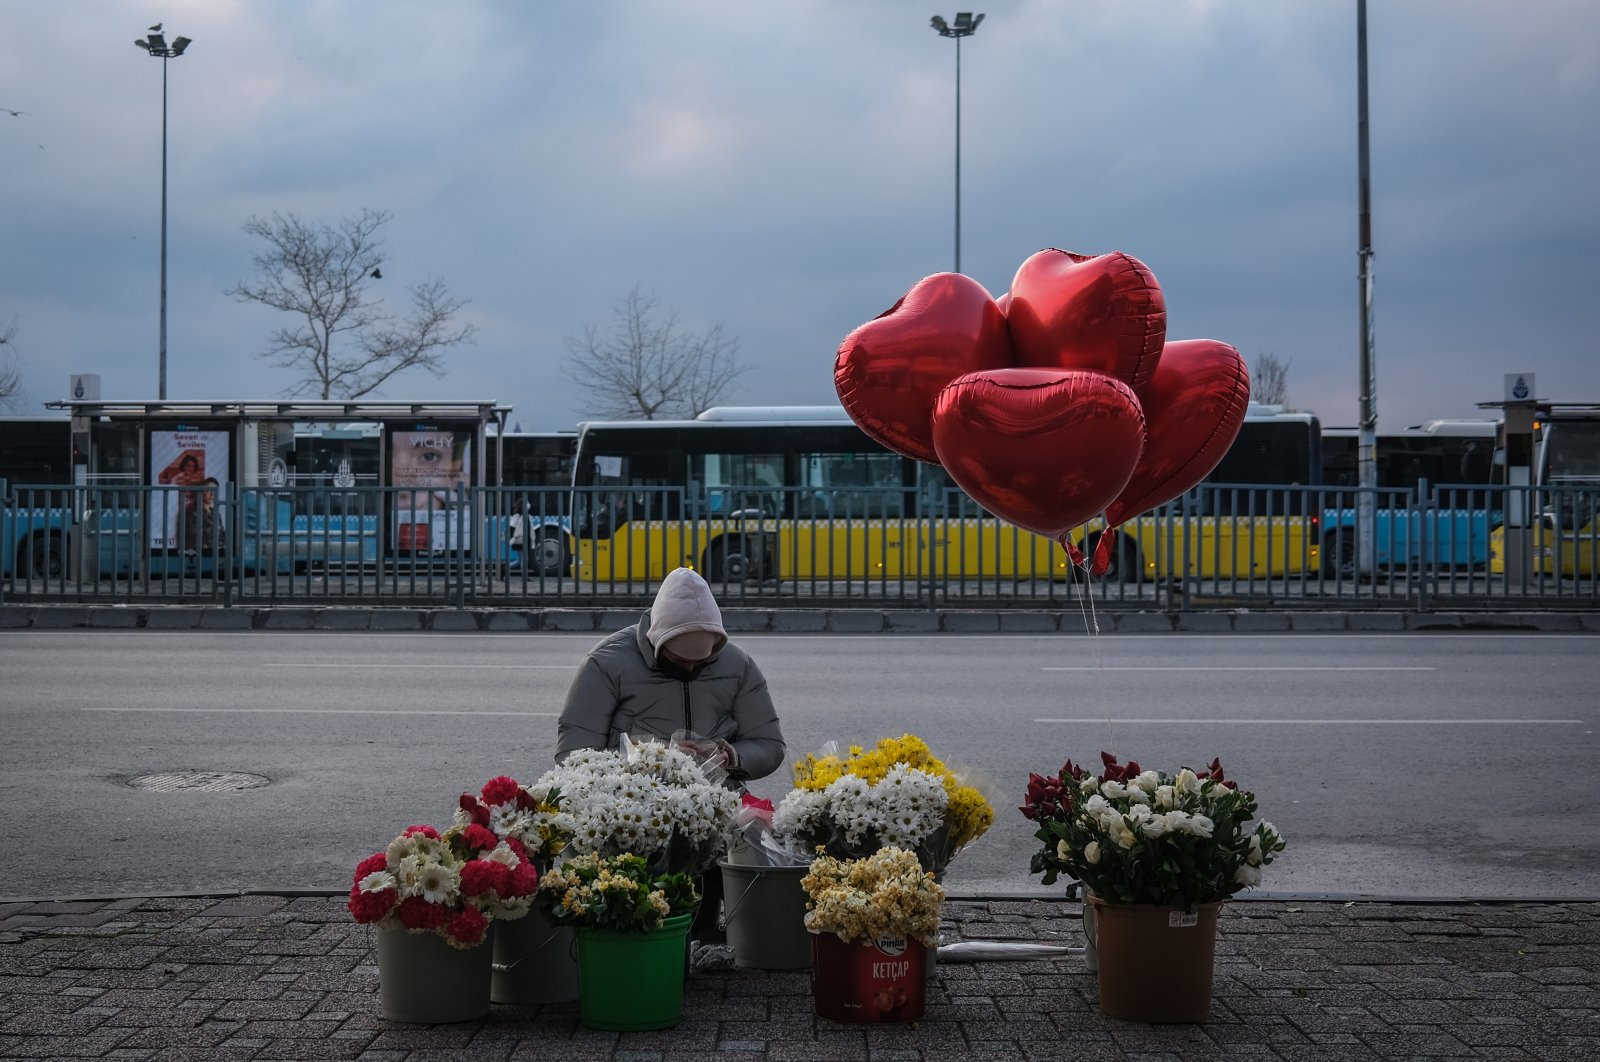 A florist wearing a mask waits for customers on the street before a weekend lockdown in Istanbul, Turkey, Feb. 12, 2021. (EPA Photo)